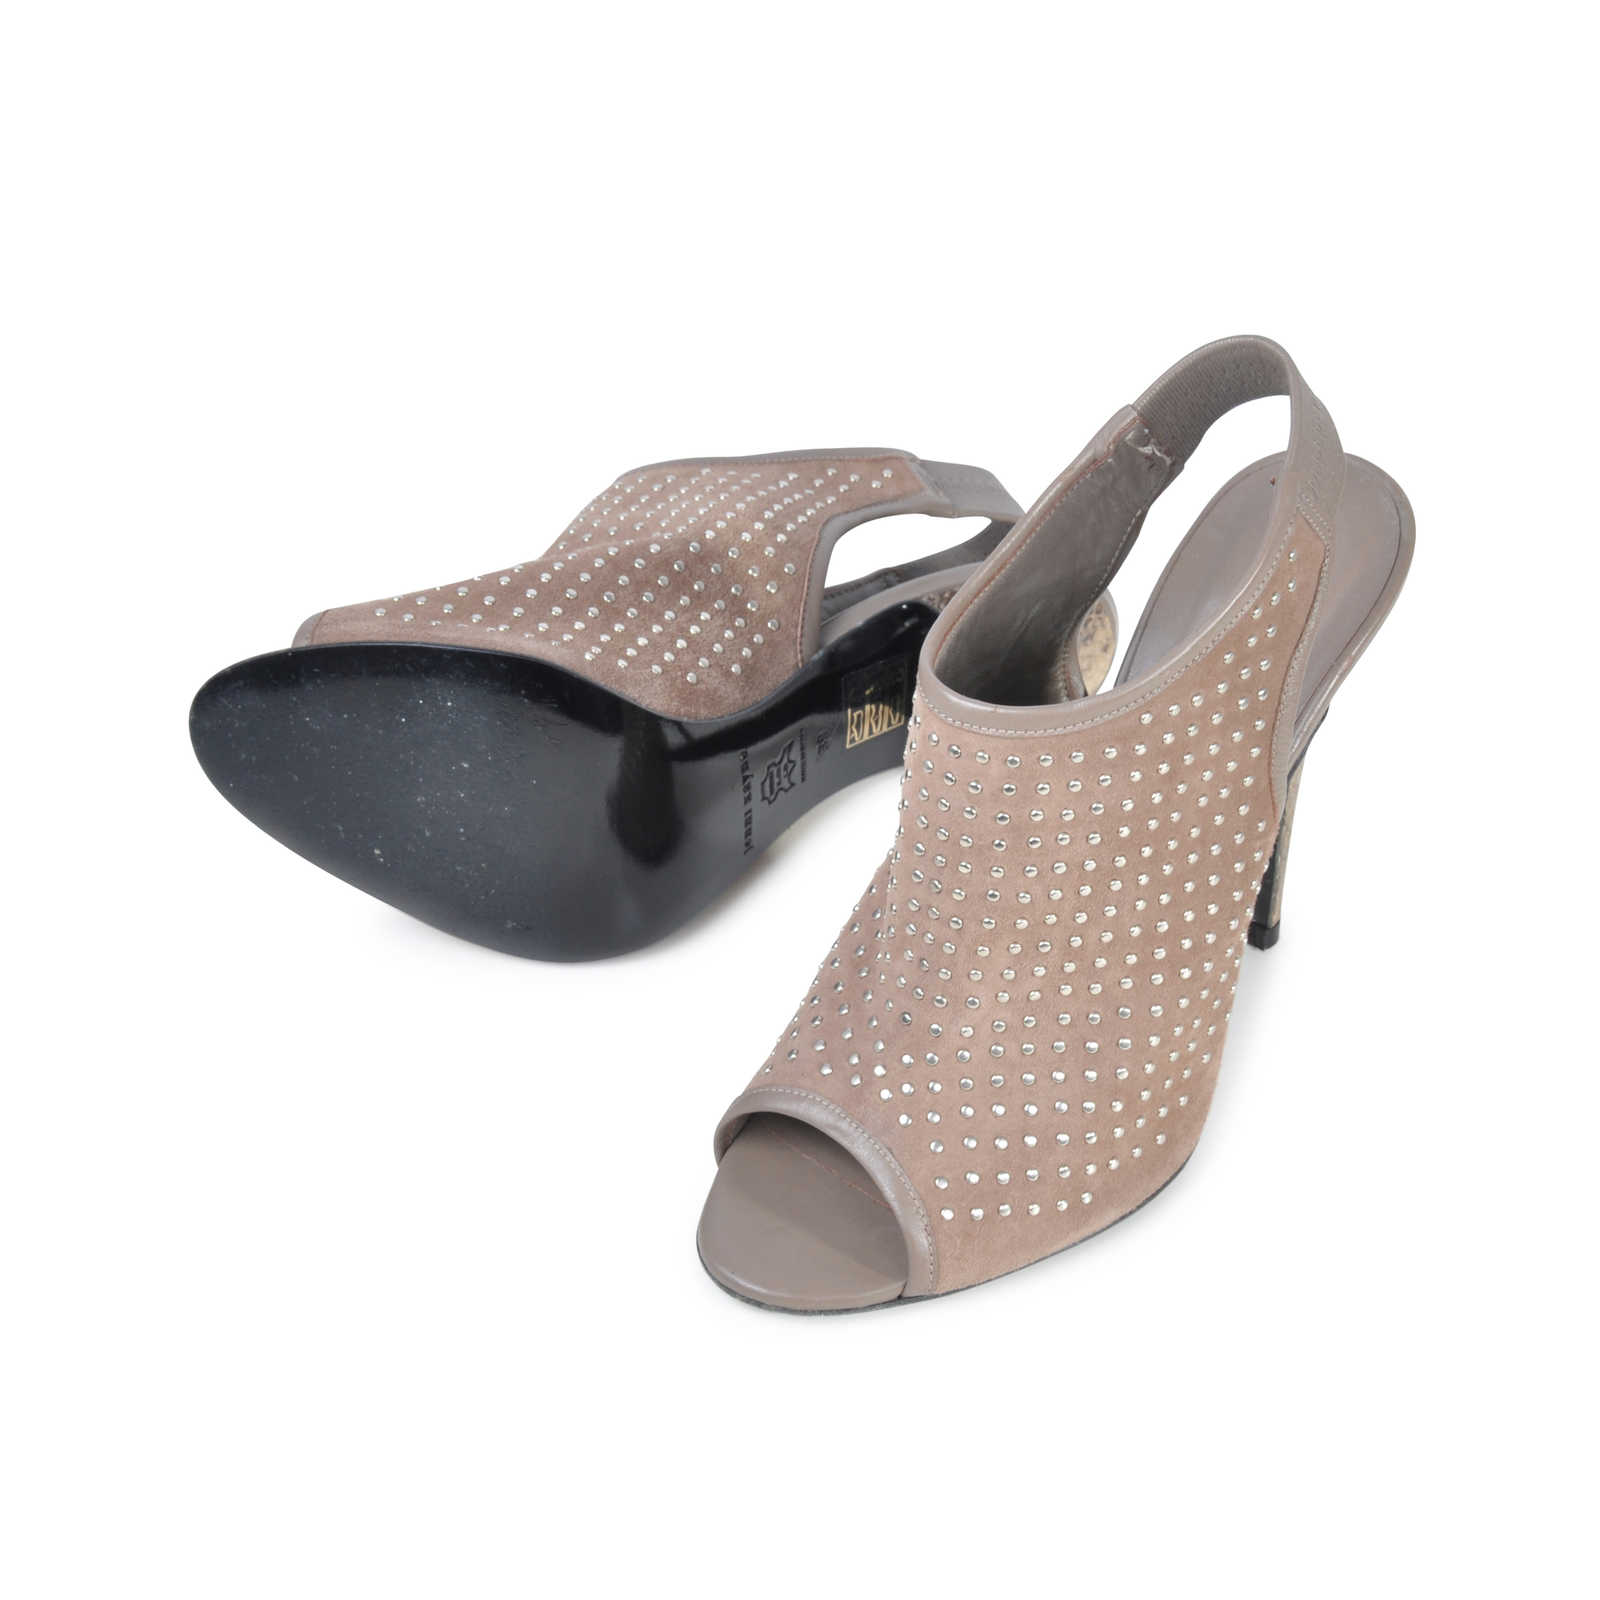 ... Authentic Pre Owned Jenni Kayne Studded Slingback Heels (PSS-074-00014) -